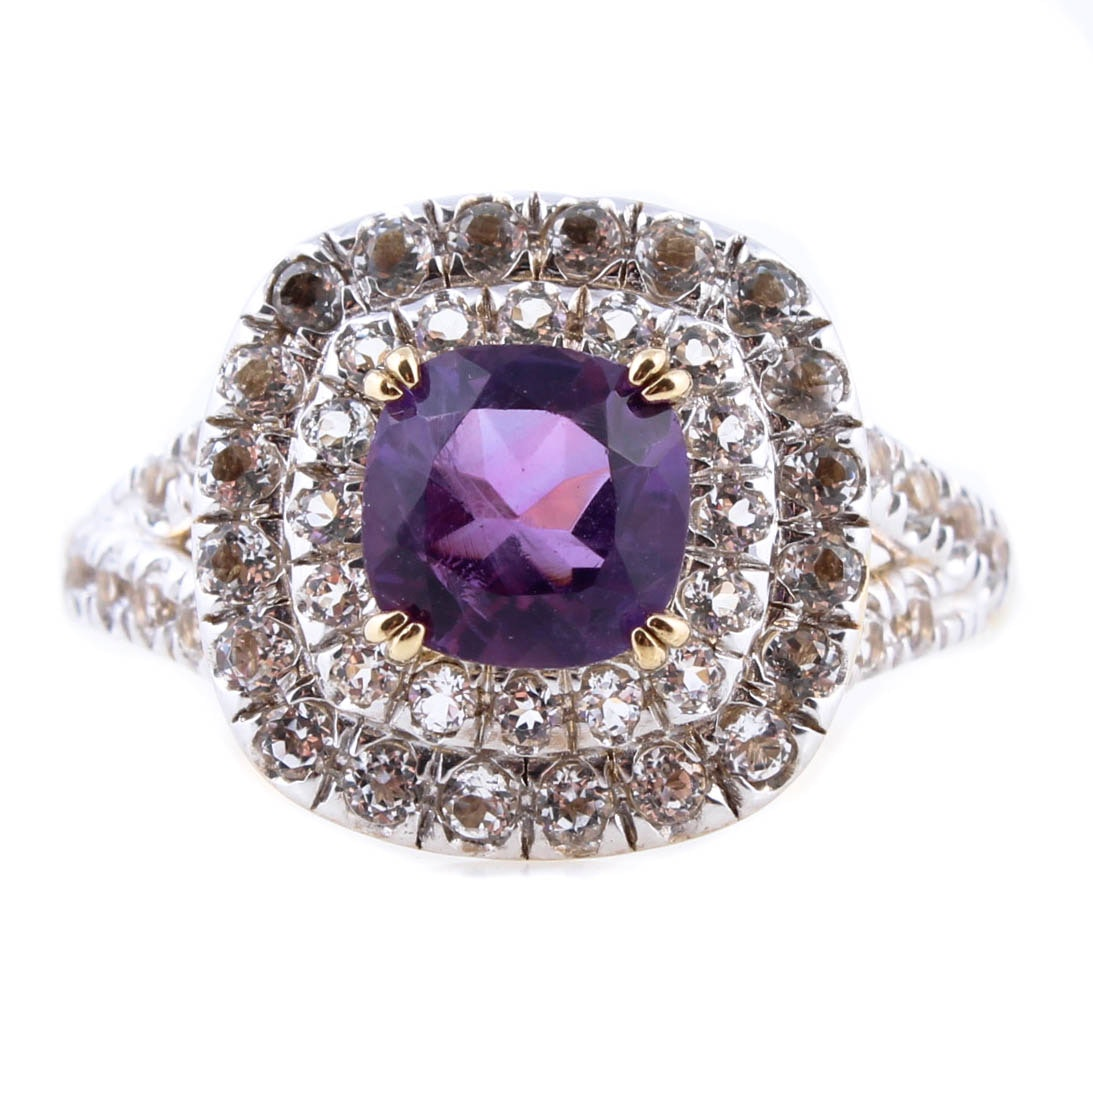 Sterling Silver with Gold Wash Ring with Amethyst and White Topaz